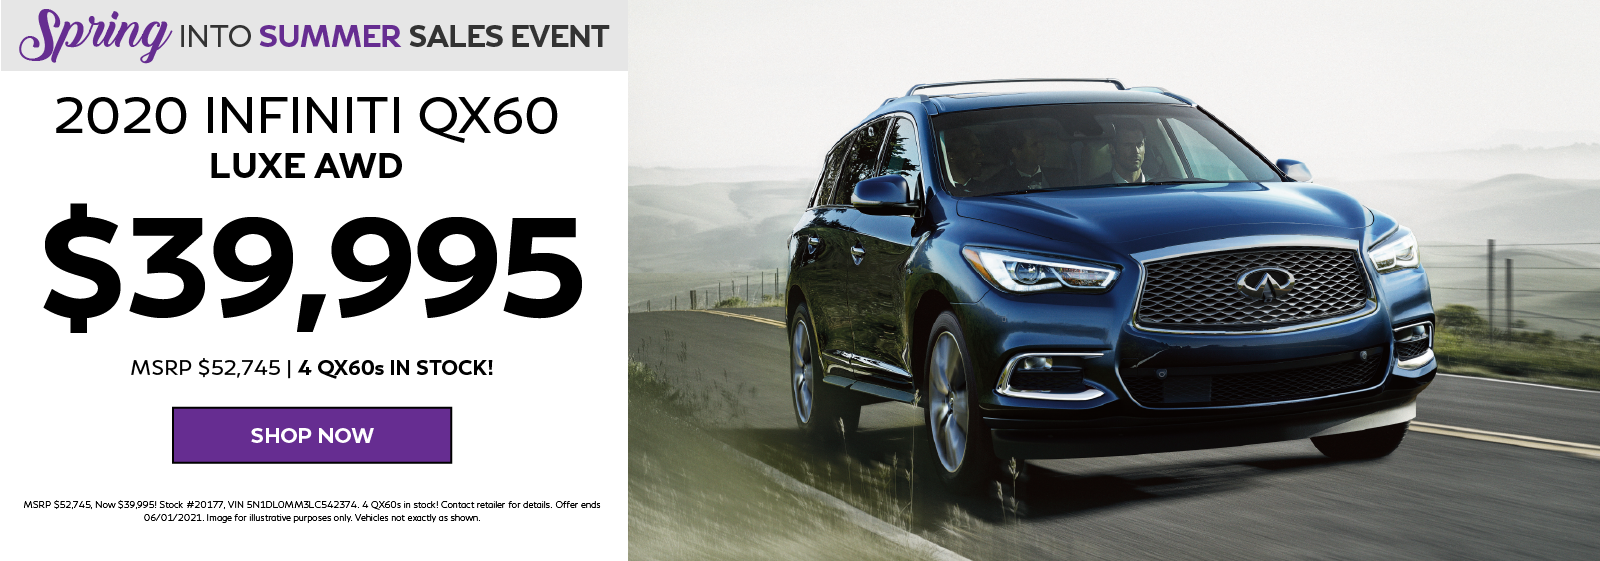 2020 INFINITI QX60 LUXE AWD Special Pricing Offer. Click to shop now.